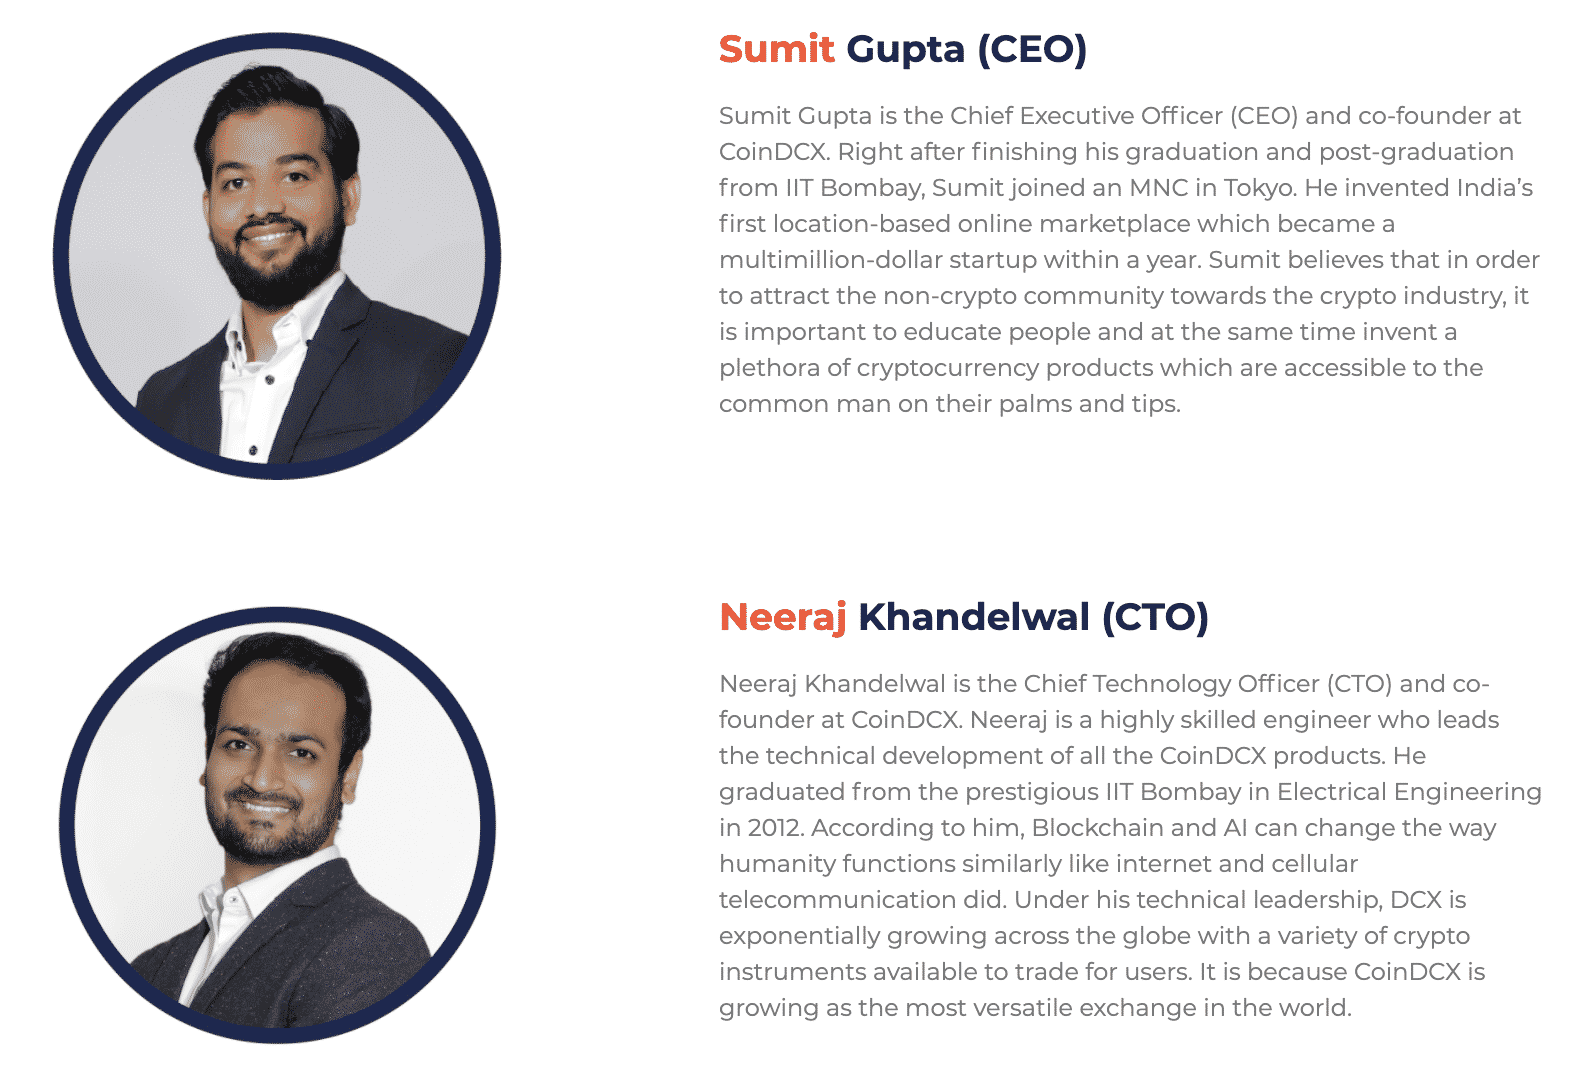 The site bios for CoinDCX Founders Sumit Gupta and Neeraj Khandelwal, courtesy CoinDCX